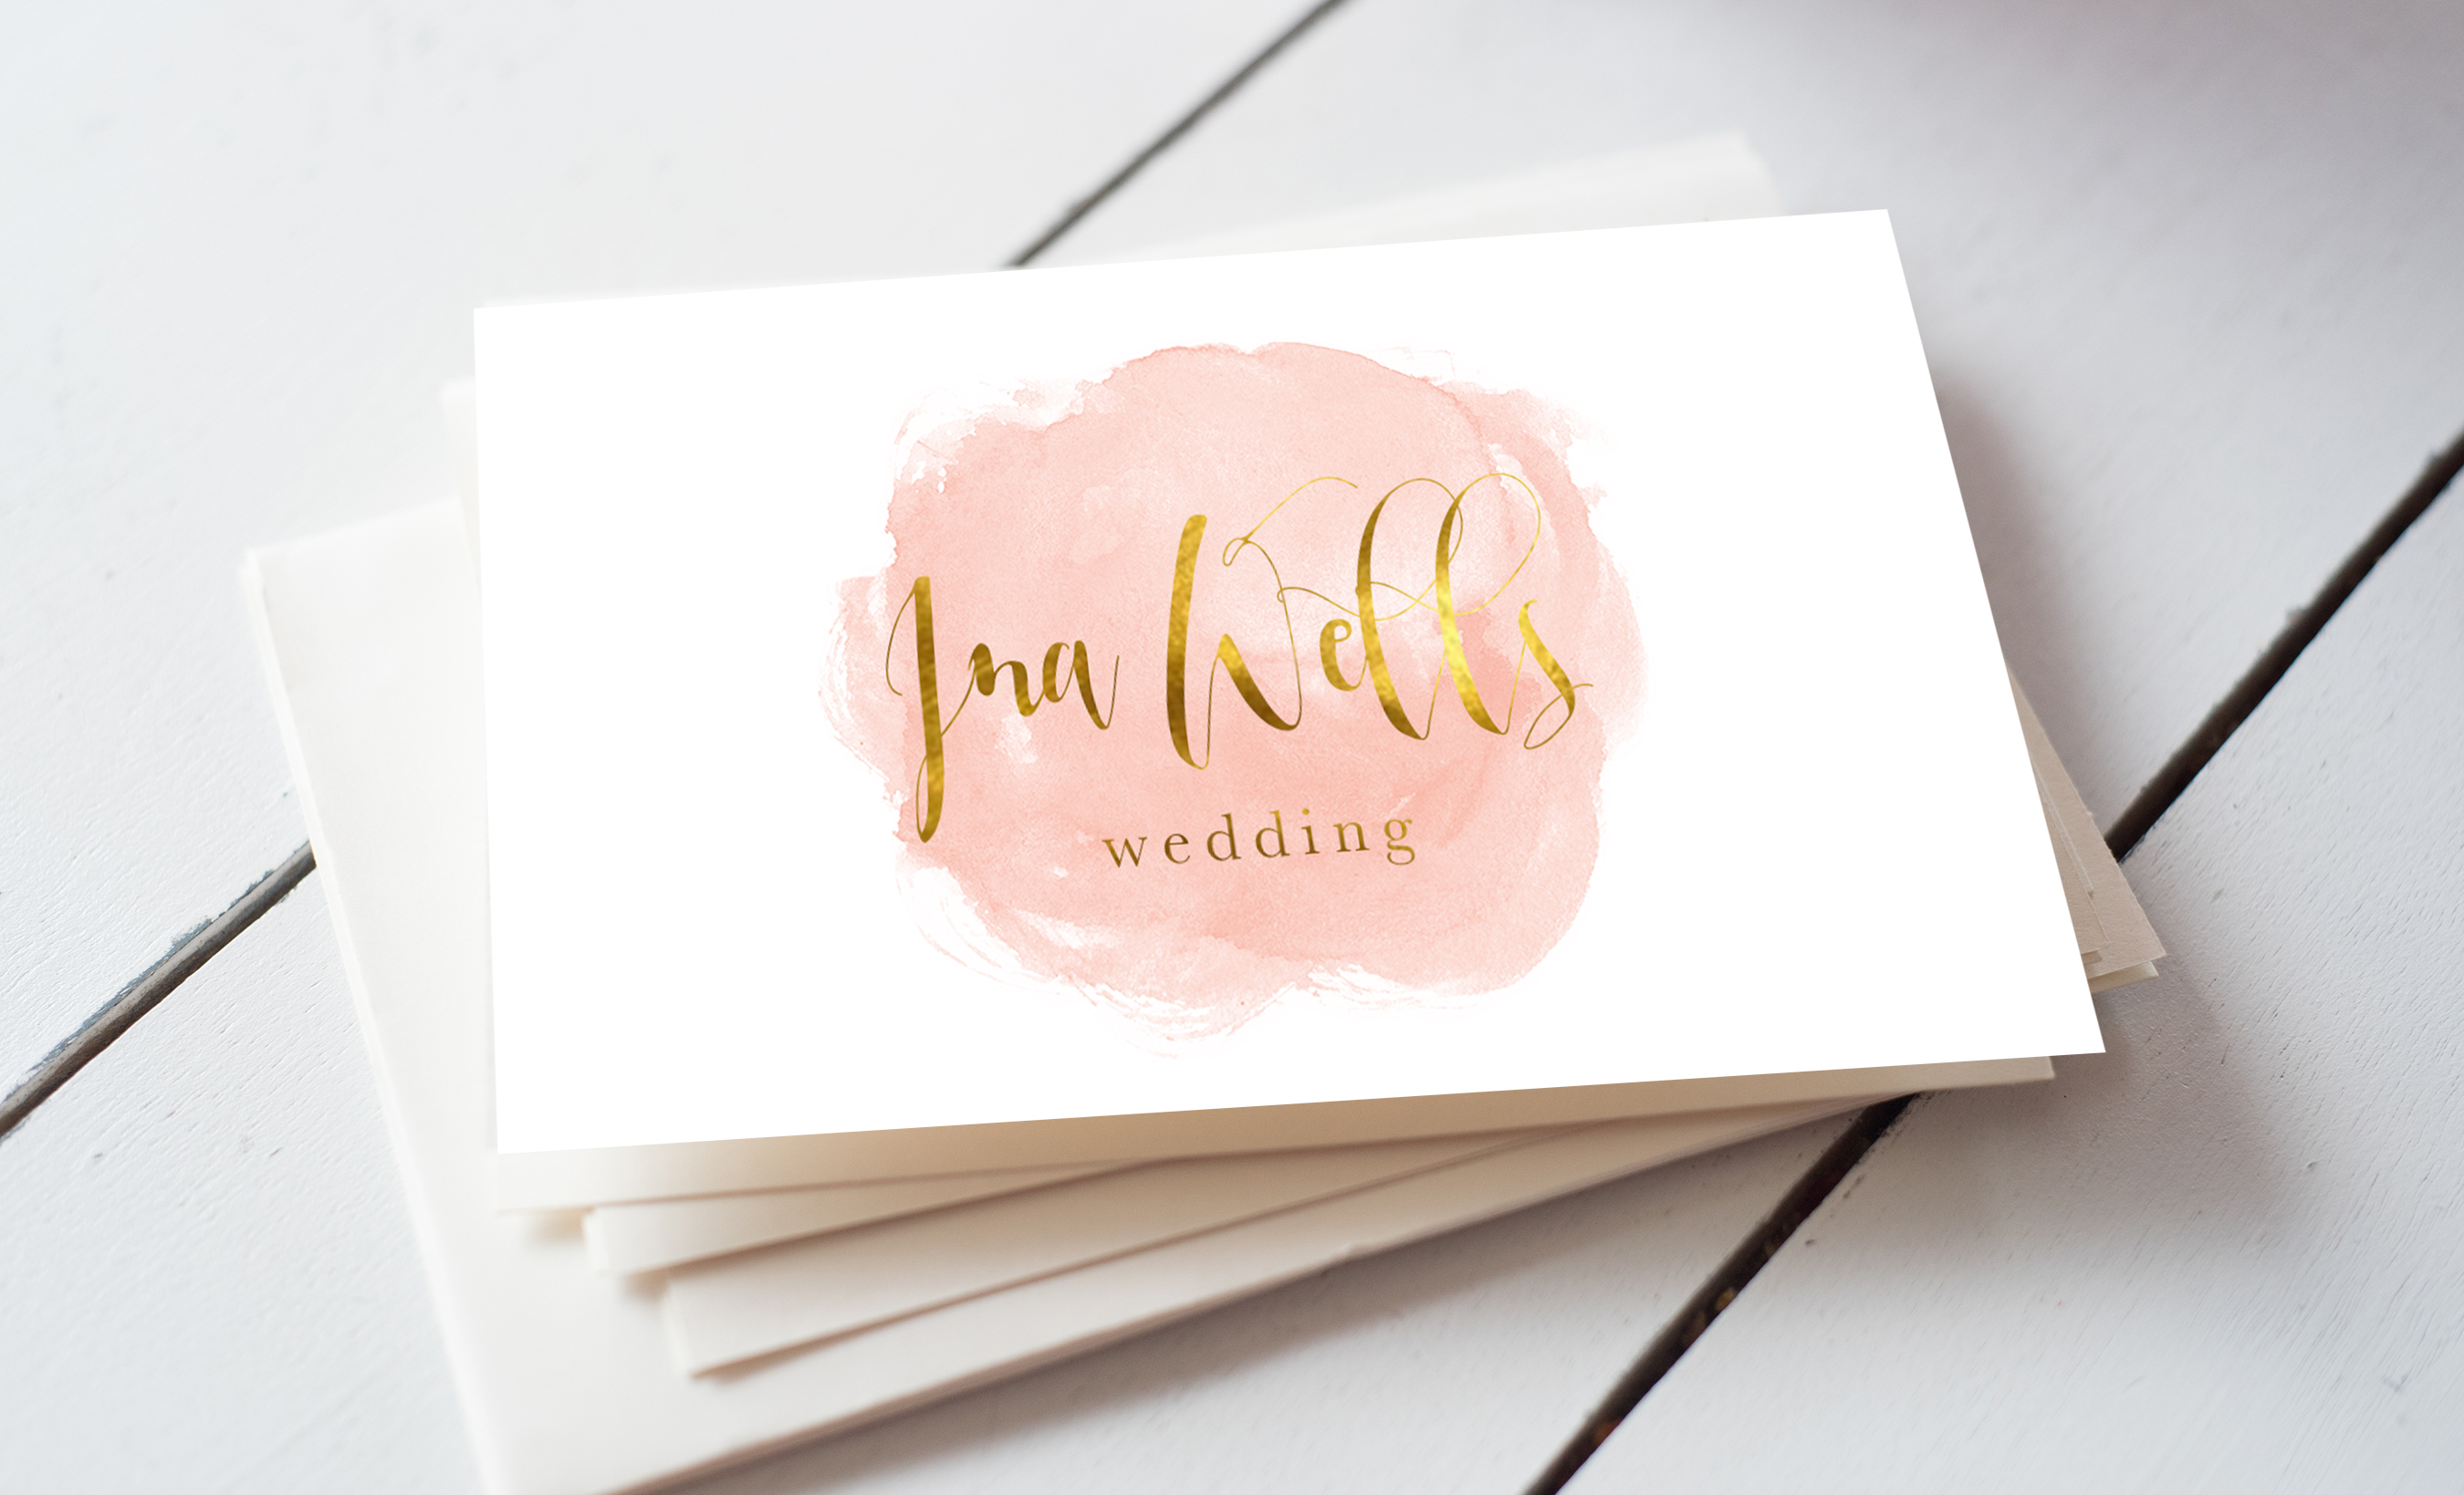 Watercolour Wedding Business Card Template Inspiration CardFaves - Wedding business card template